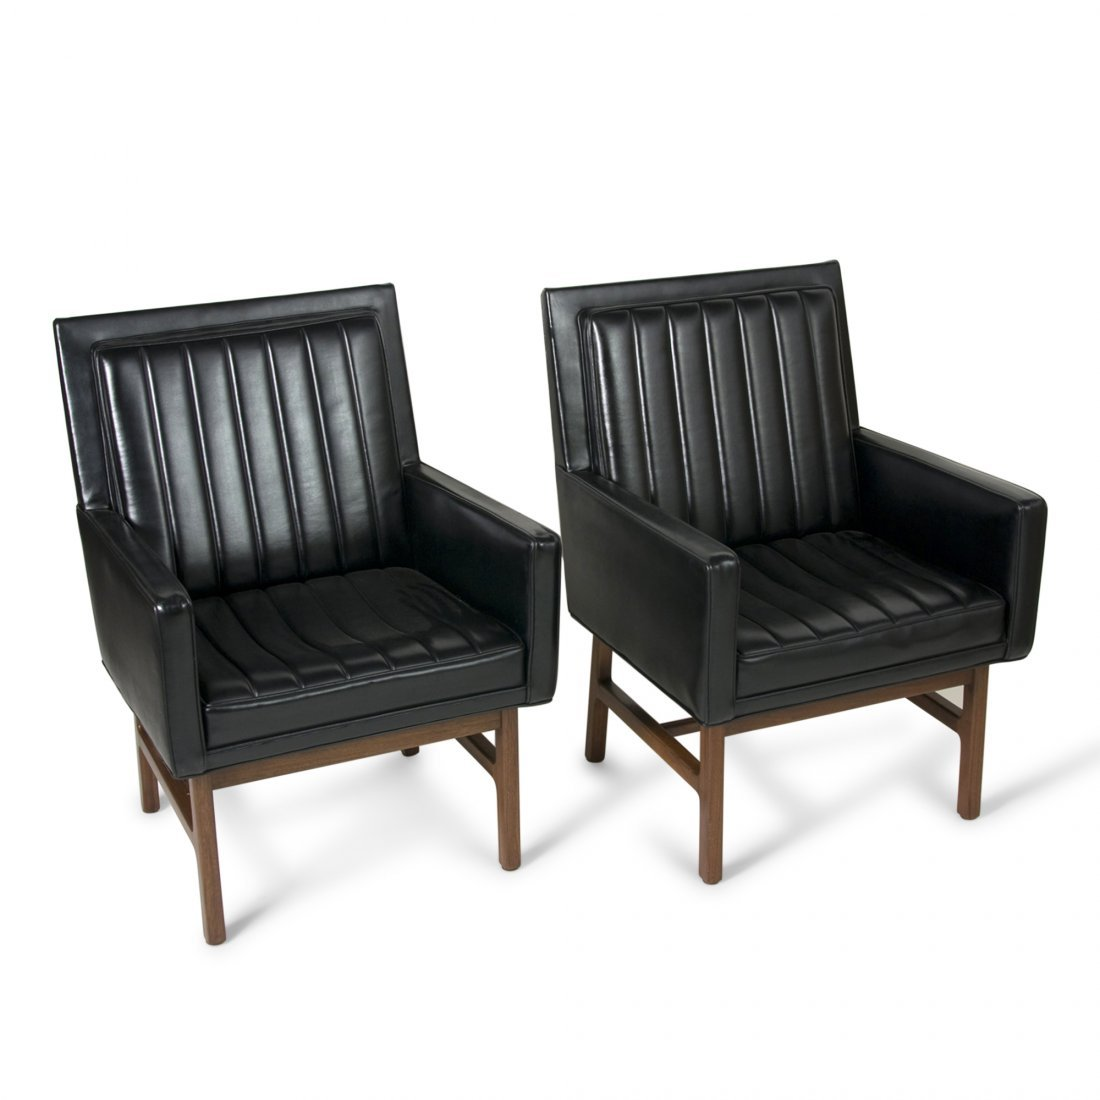 Black Armchairs by Milo Baughman (2nd pair)